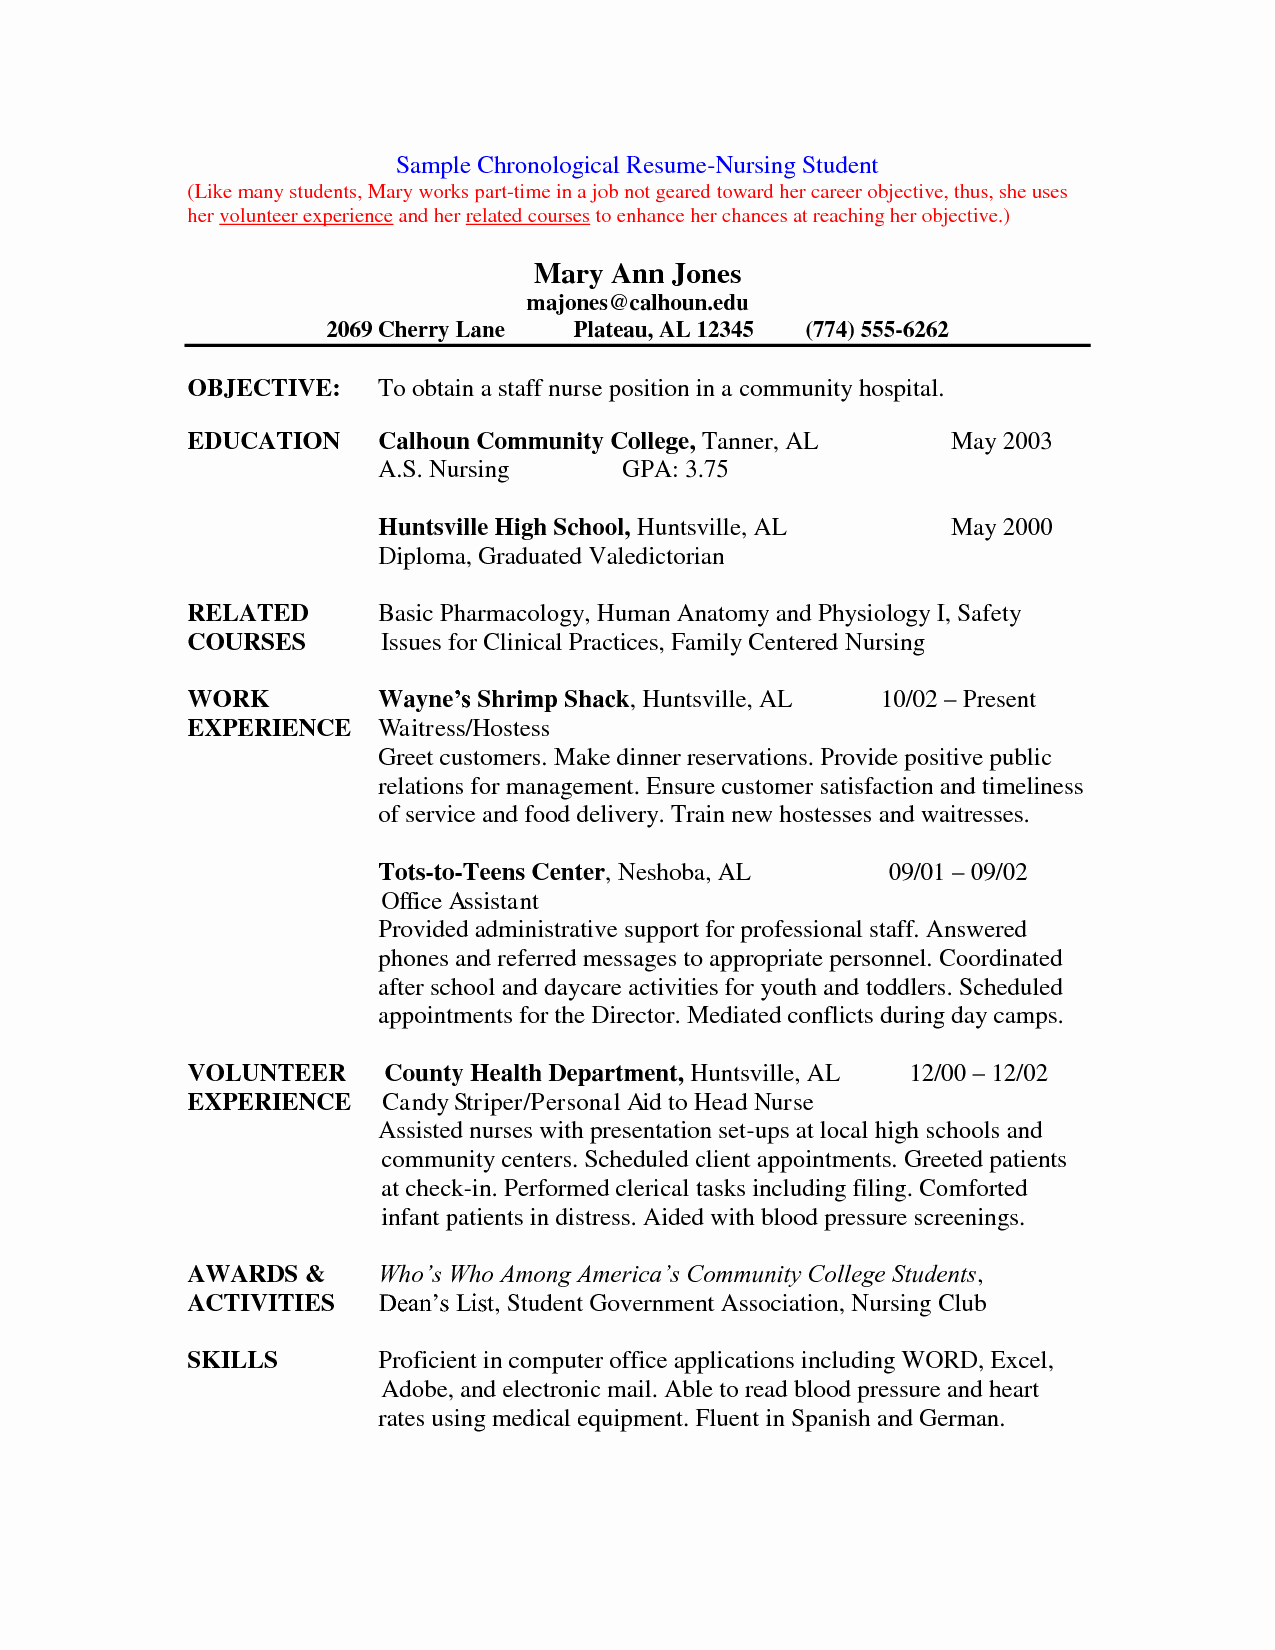 Nursing Student Resume Template Elegant Cover Letters for Nursing Job Application Pdf